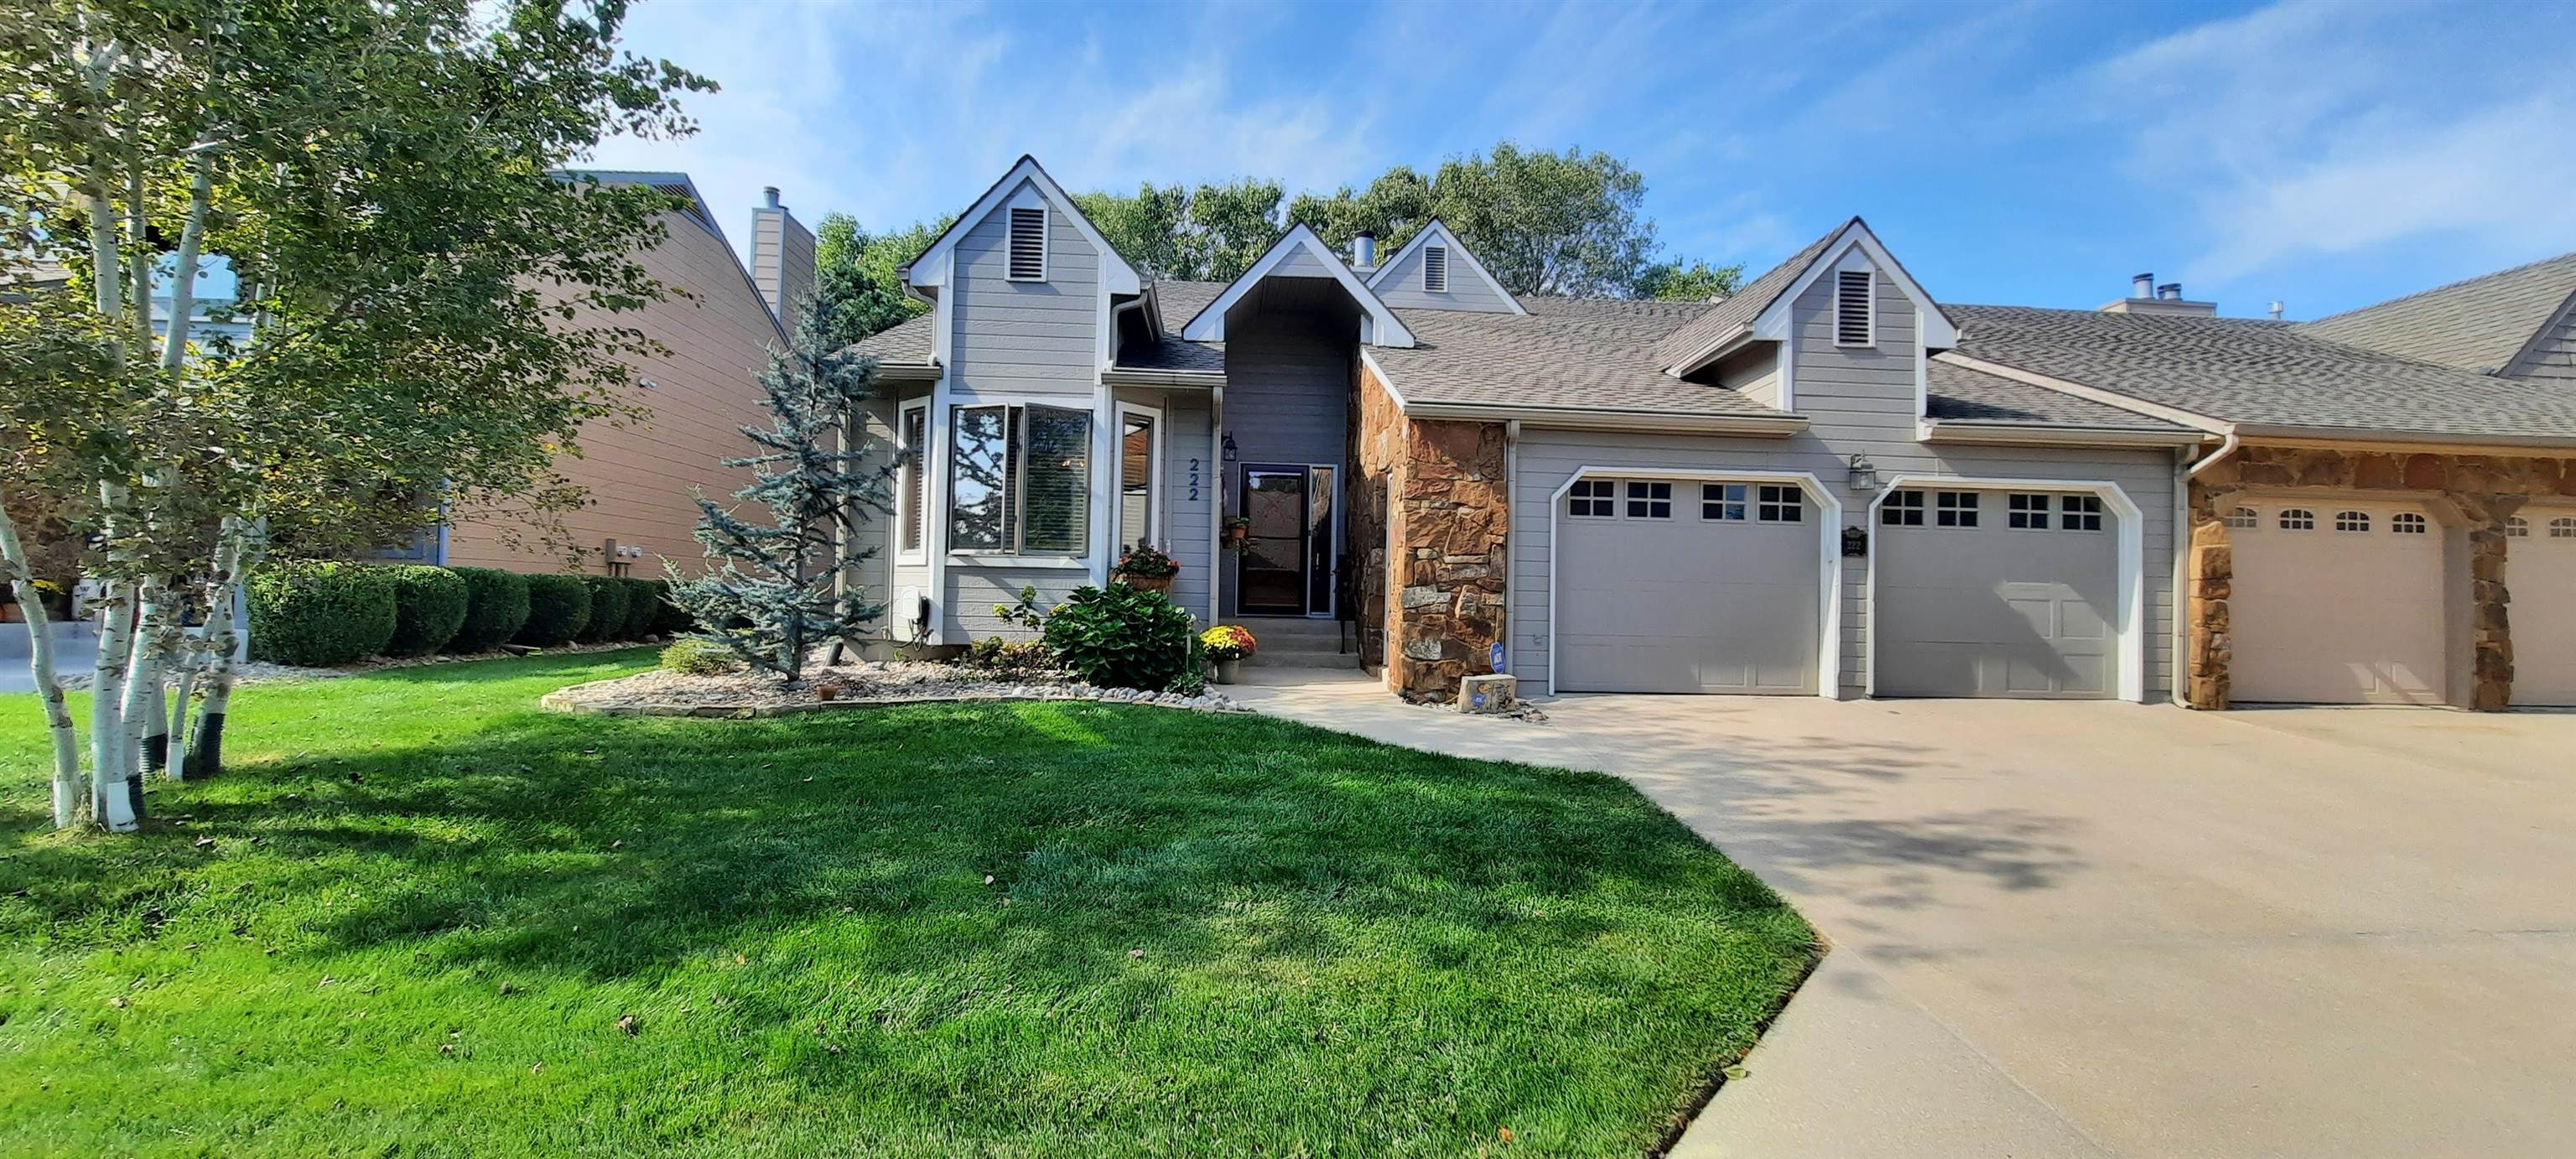 Patio home living without the cost! Come see this amazing home in a gated community in desirable nor